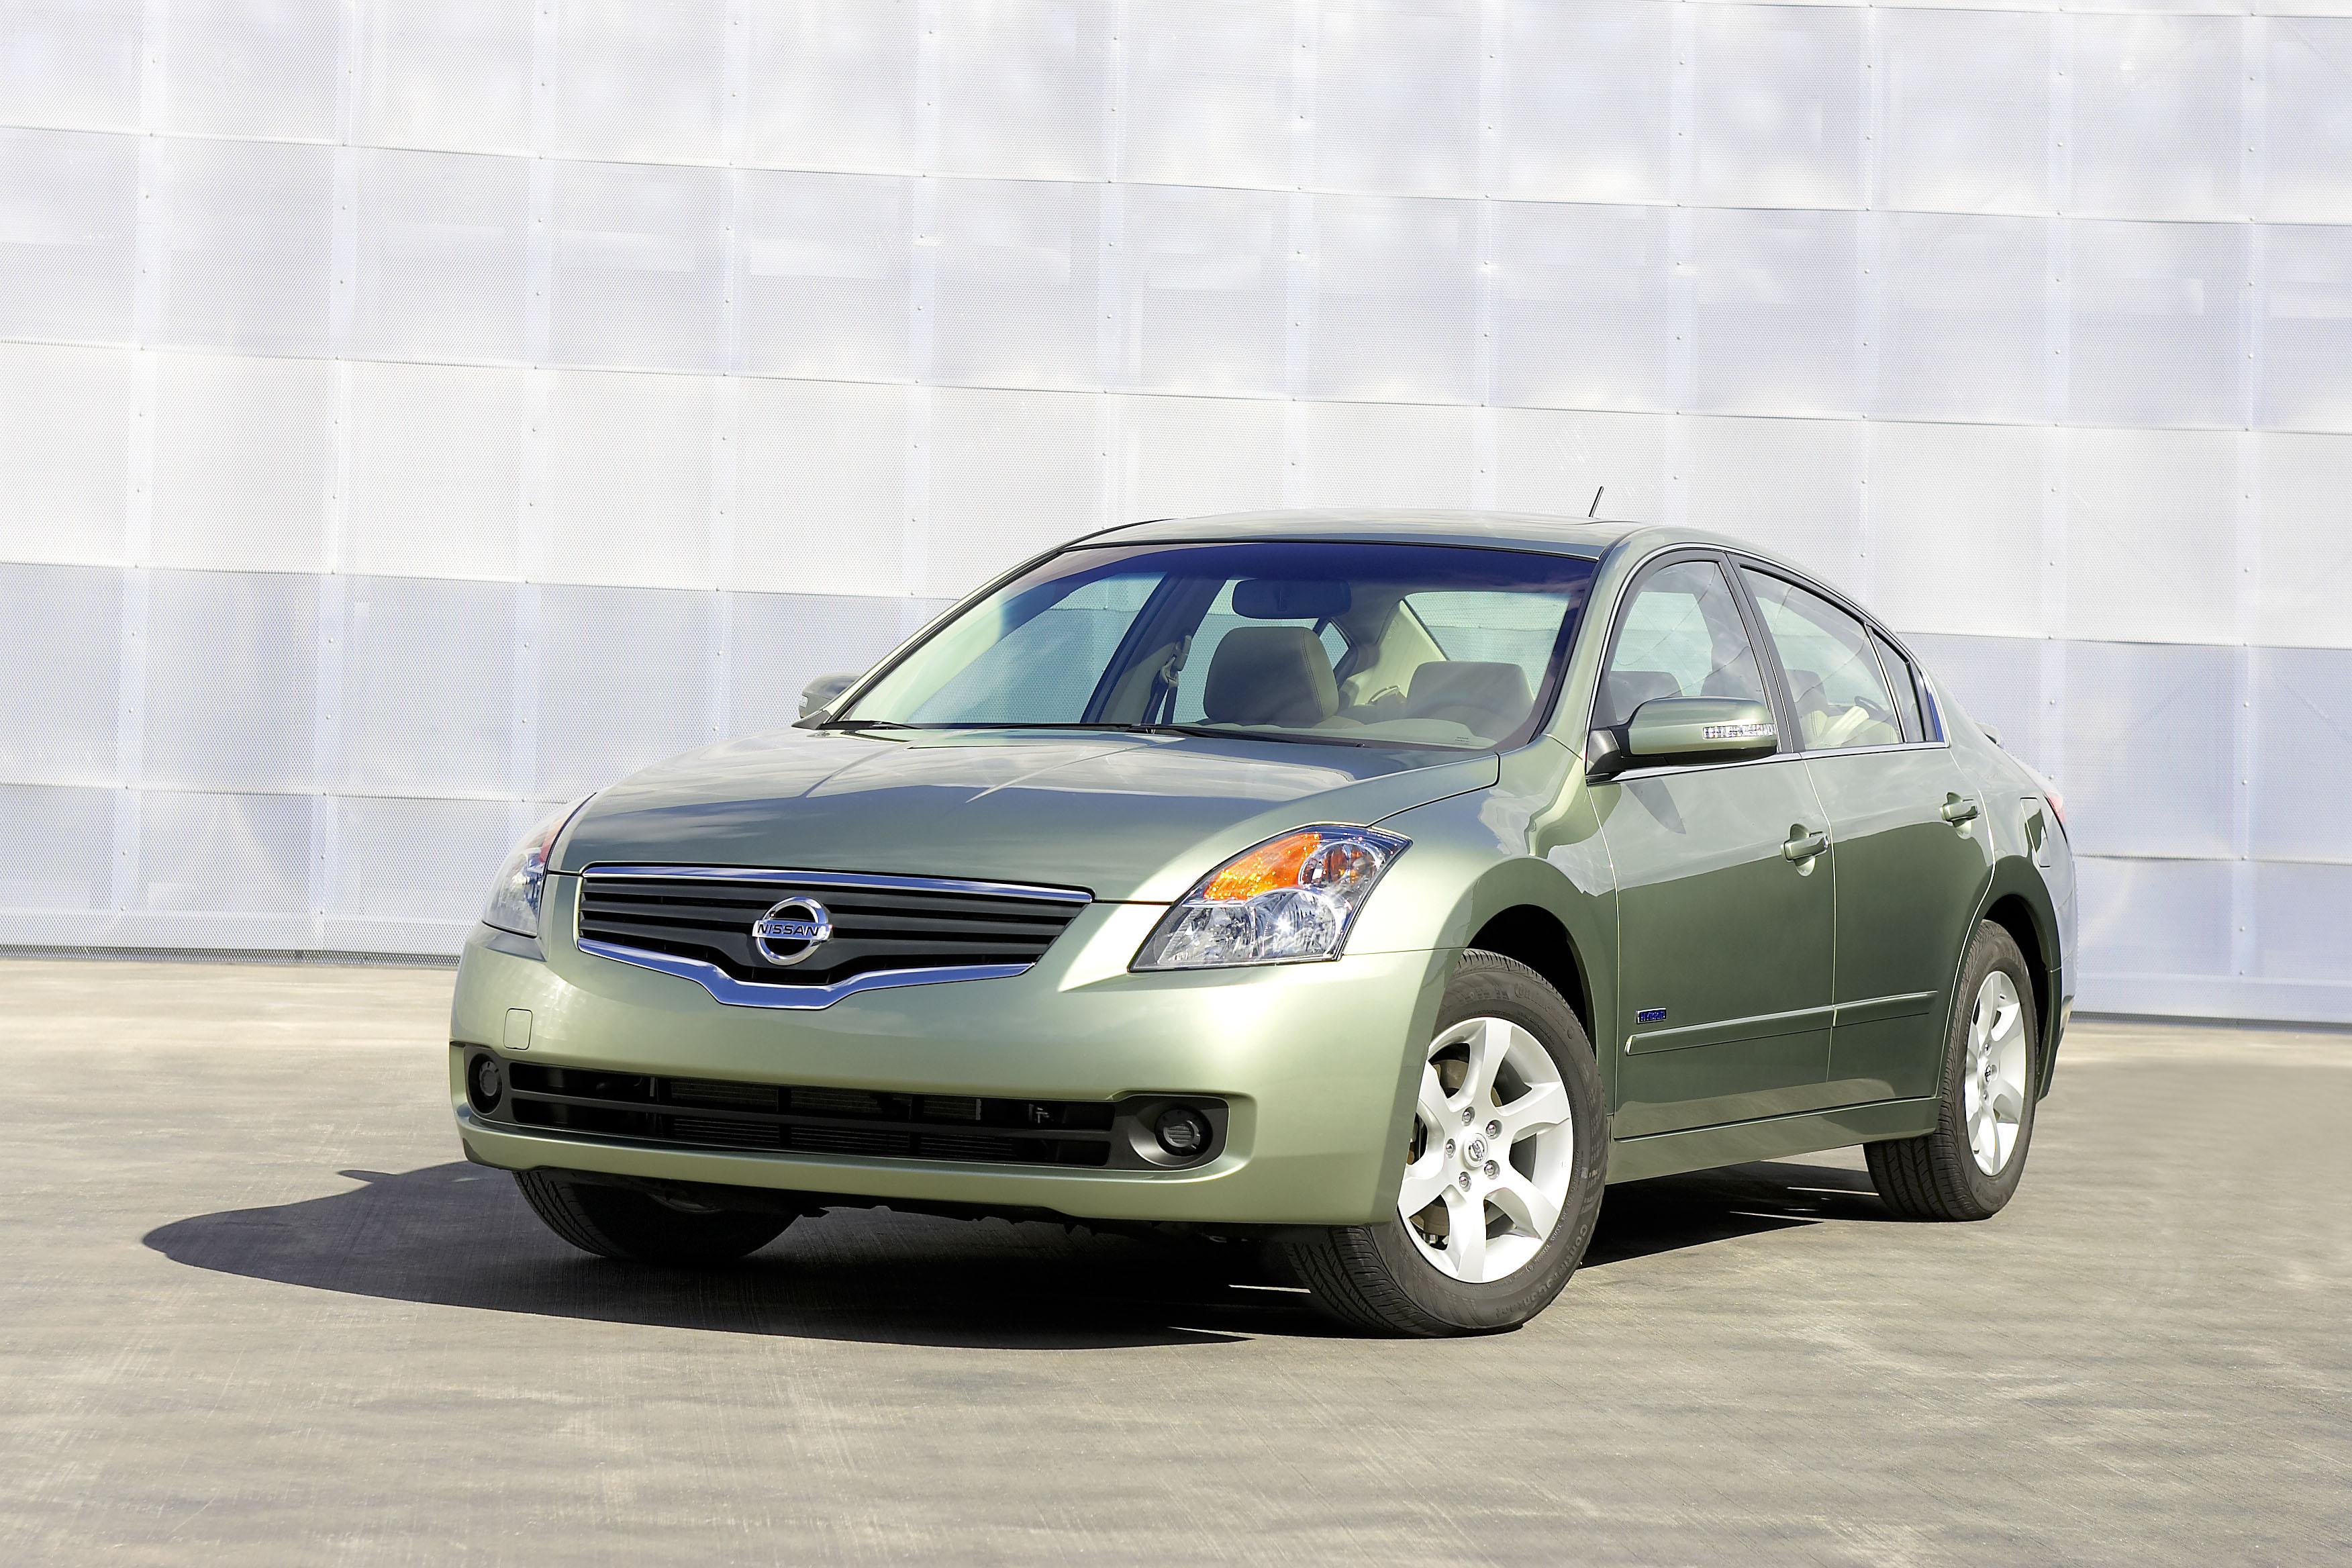 2008 nissan altima hybrid pricing announced news top speed. Black Bedroom Furniture Sets. Home Design Ideas